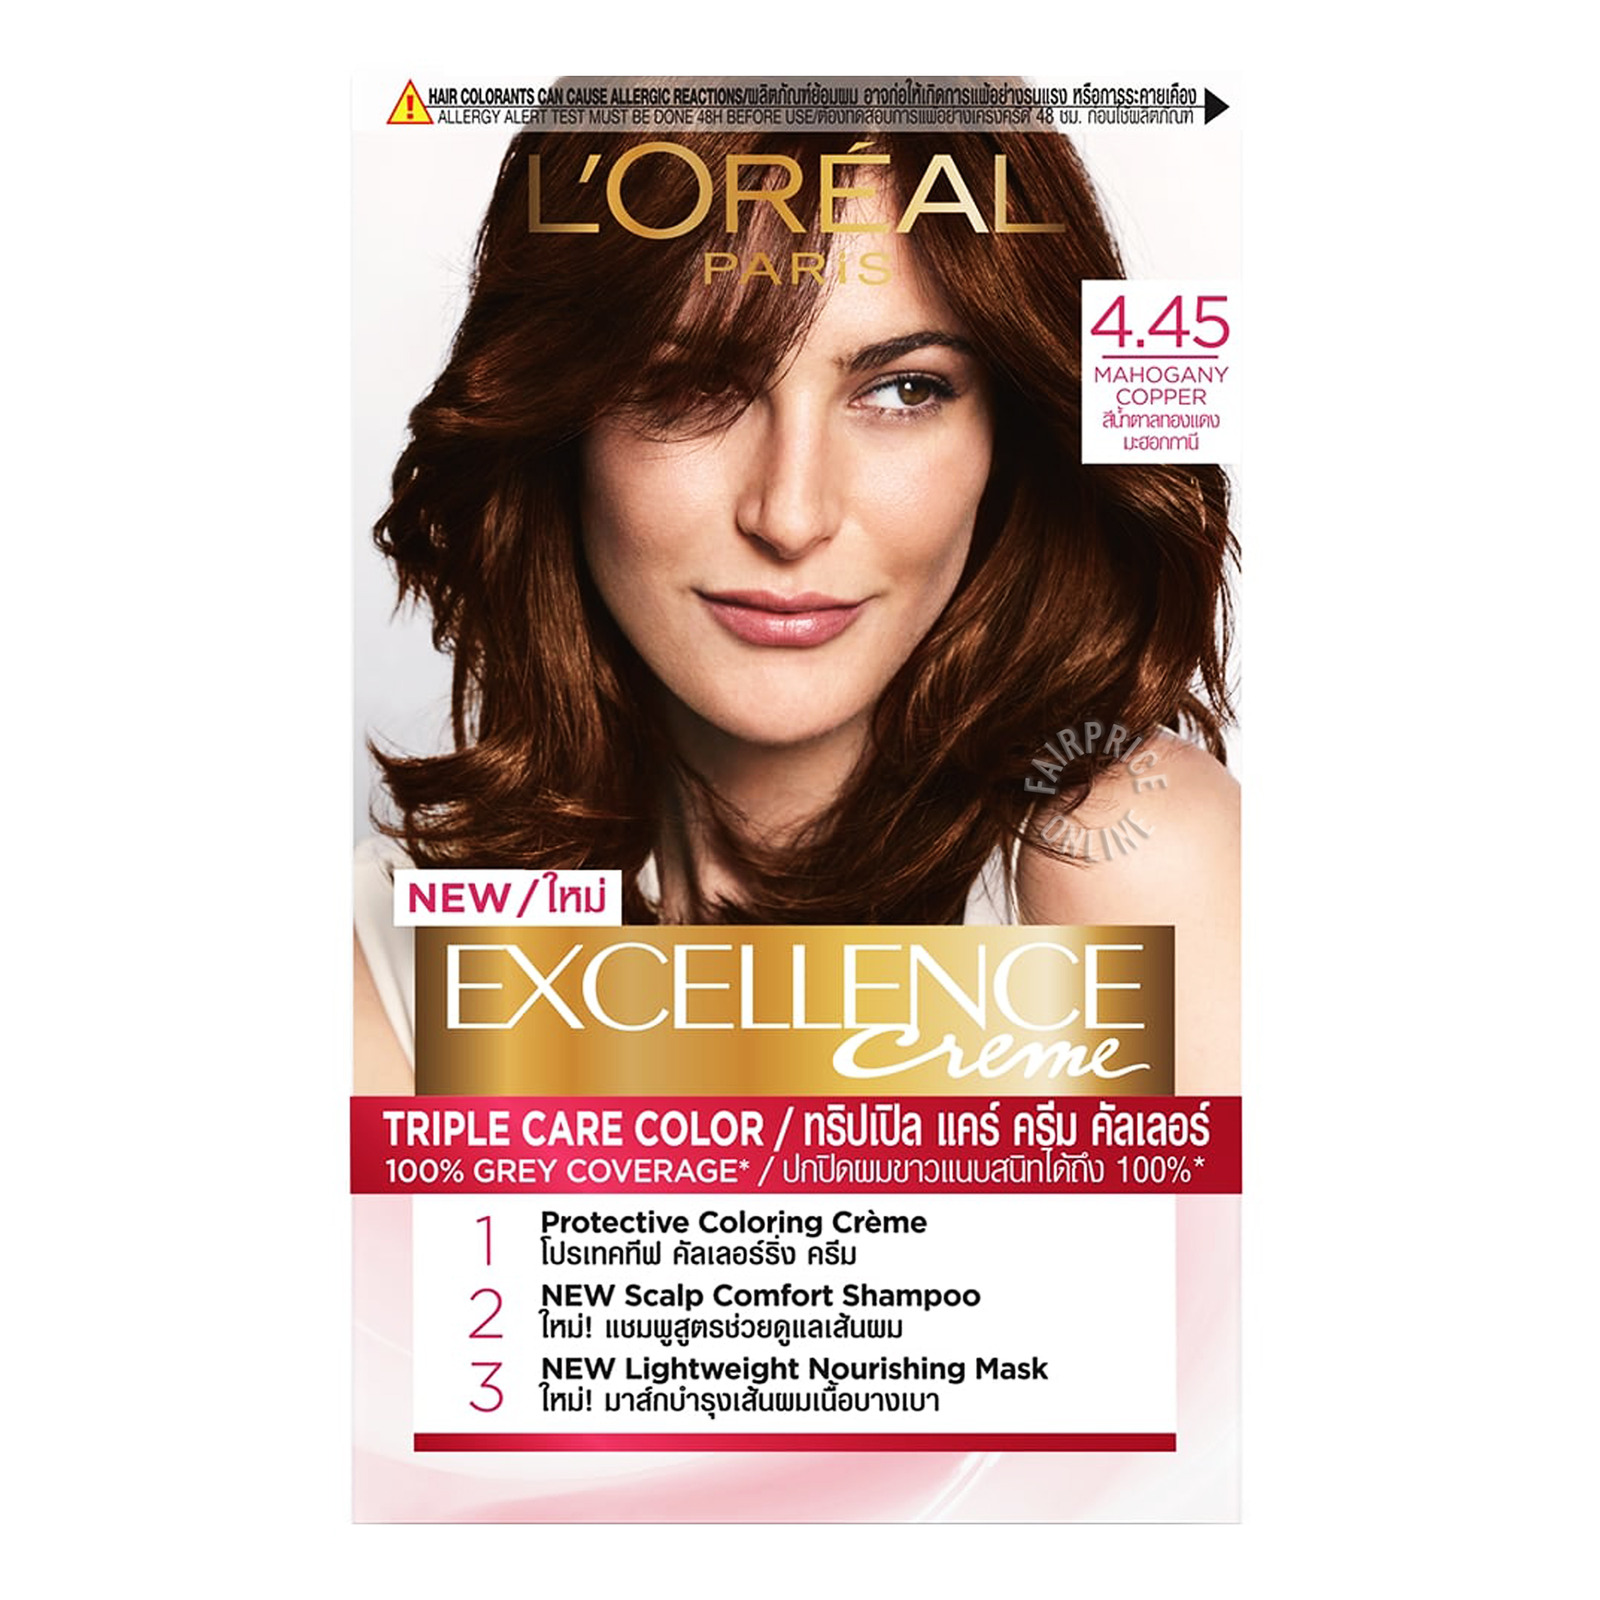 L'Oreal Paris Excellence Creme Hair Dye - 4.45M.CopperBrown